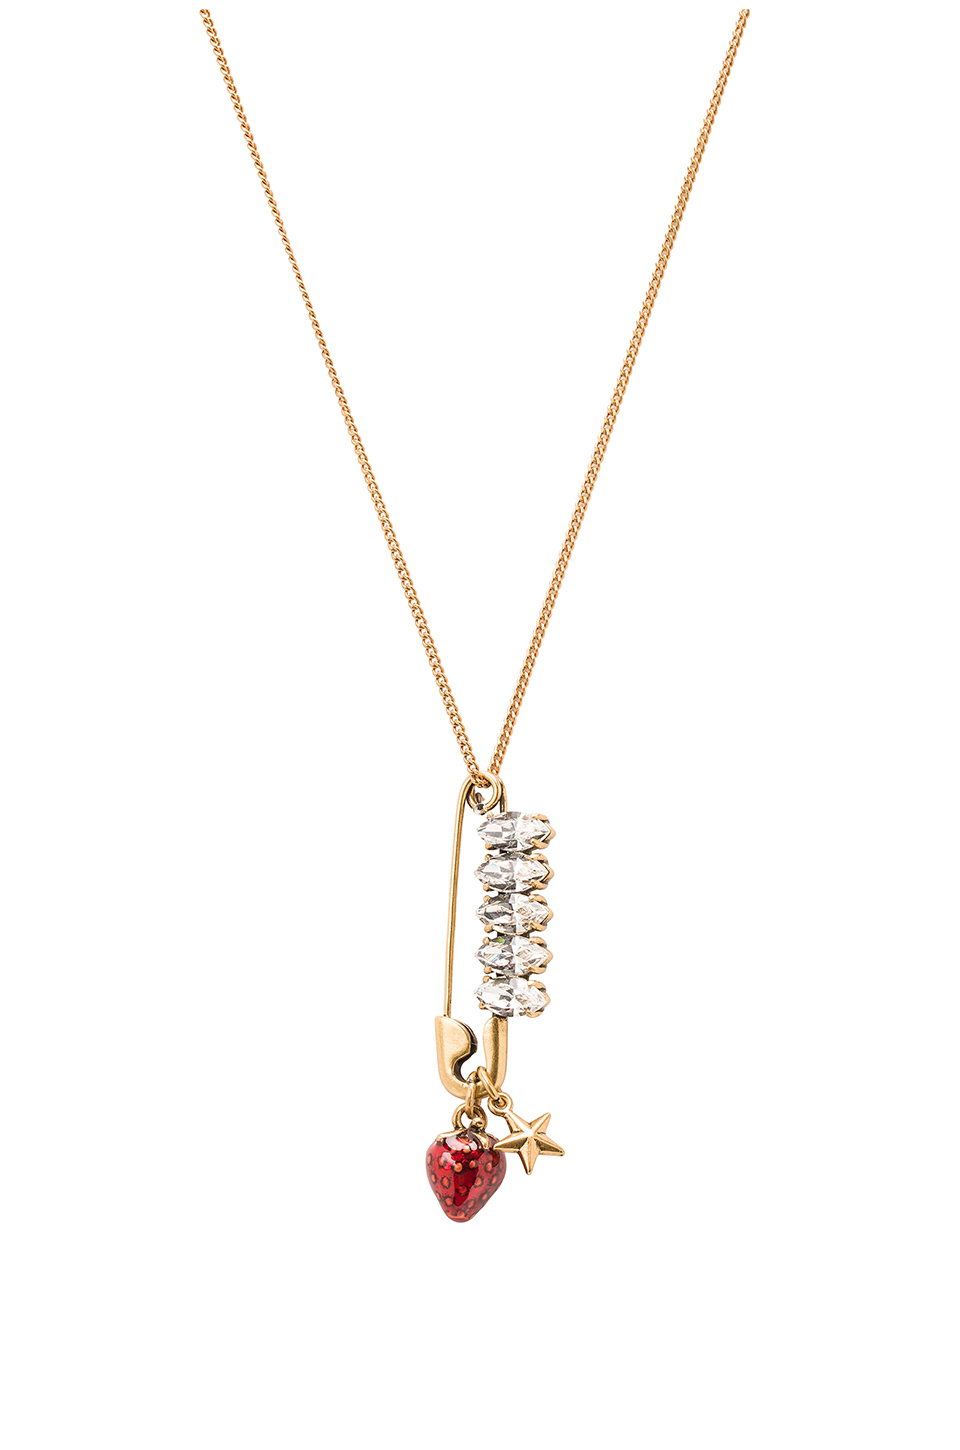 Marc Jacobs Charms Tree Pendant Necklace in Metallic Gold vJo410Kt4